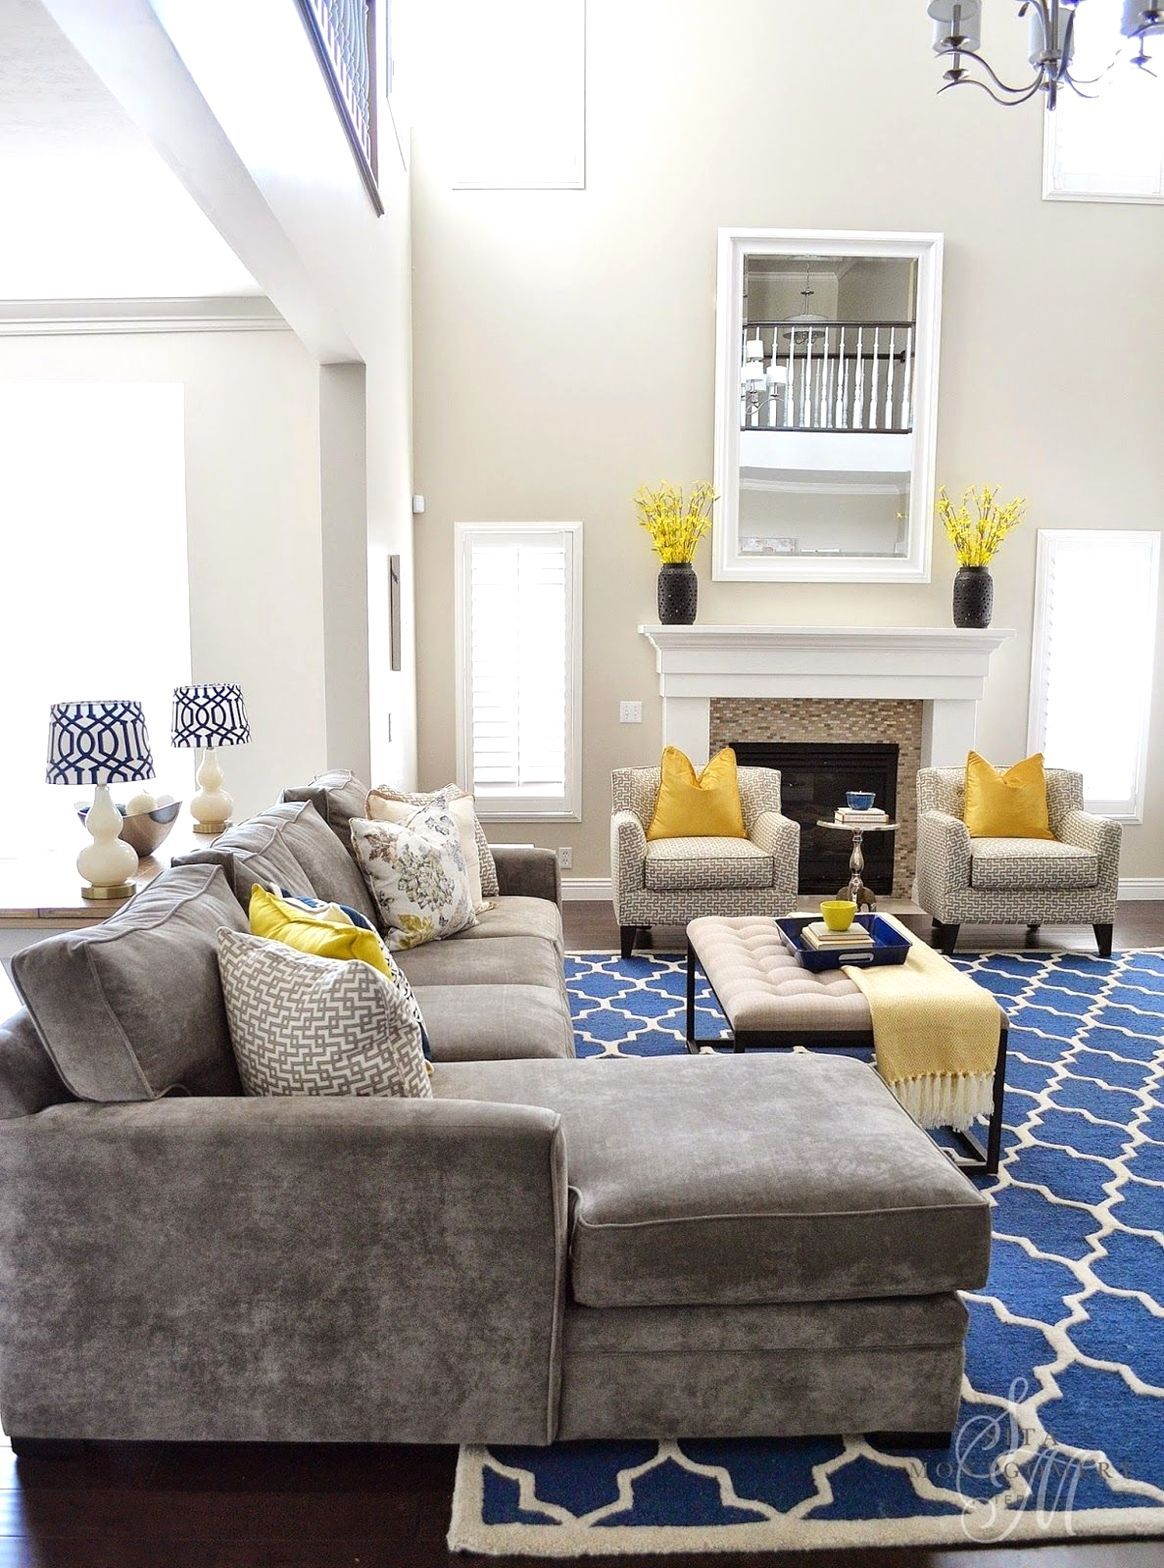 13 Indescribable Sunken Living Room Remodel Awesome Ideas Yellow Decor Living Room Grey And Yellow Living Room Yellow Living Room